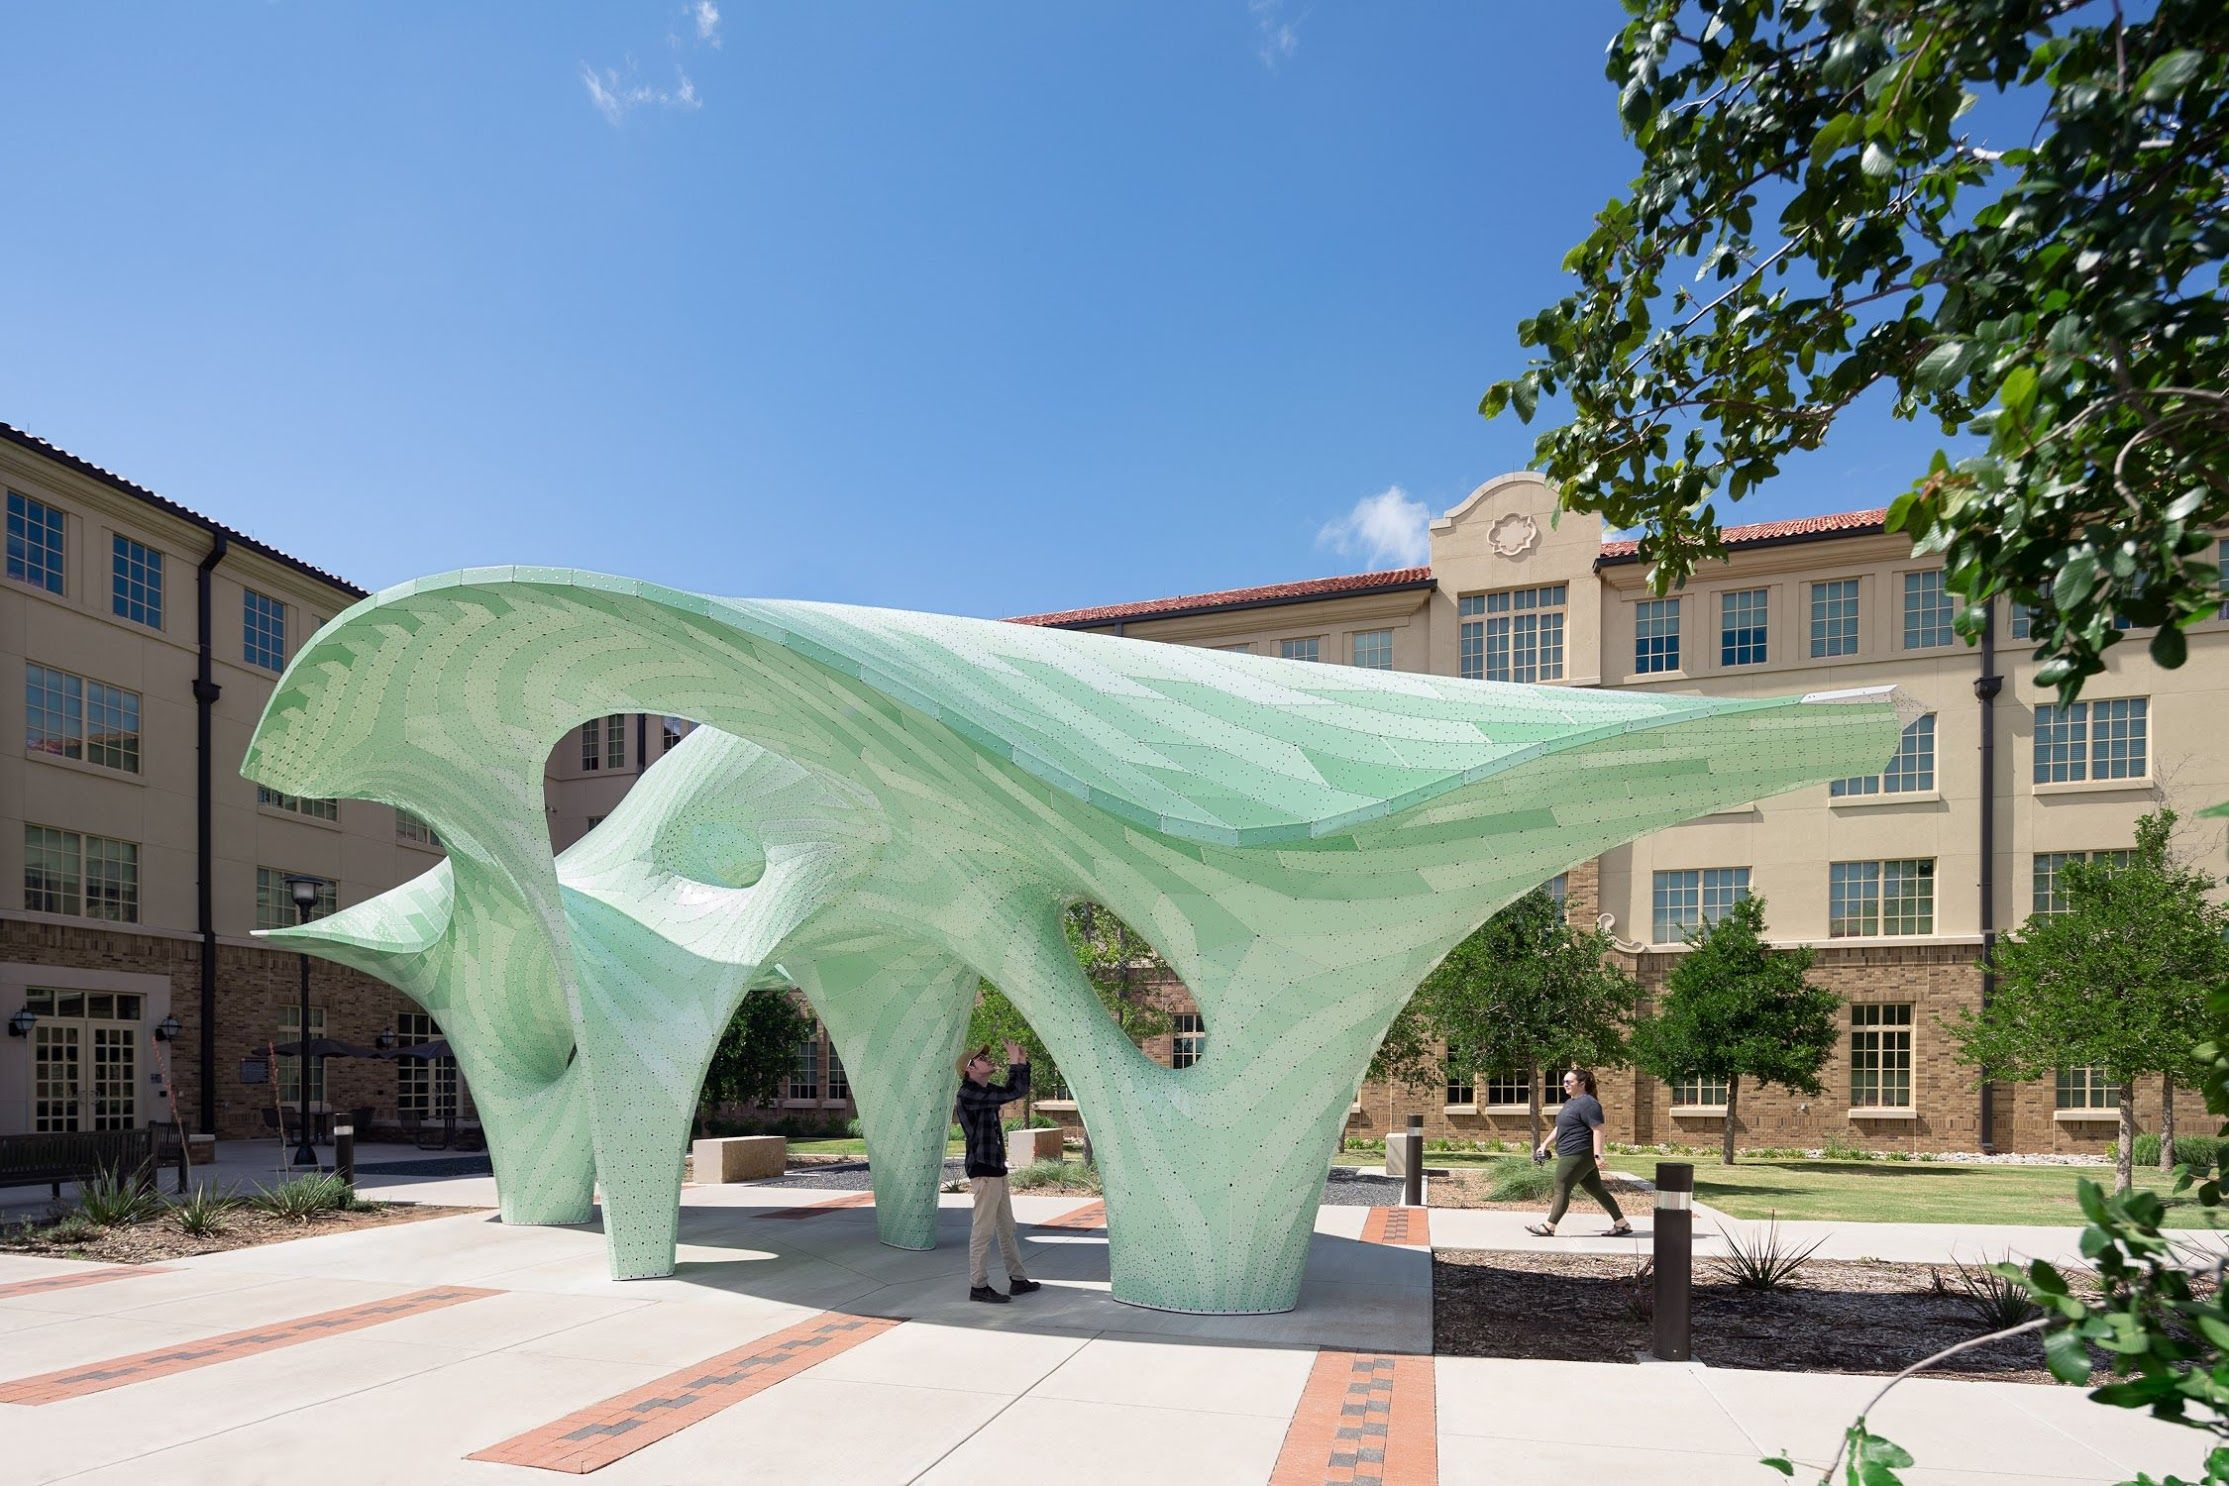 Discover New Art at Texas Tech's Public Art Collection